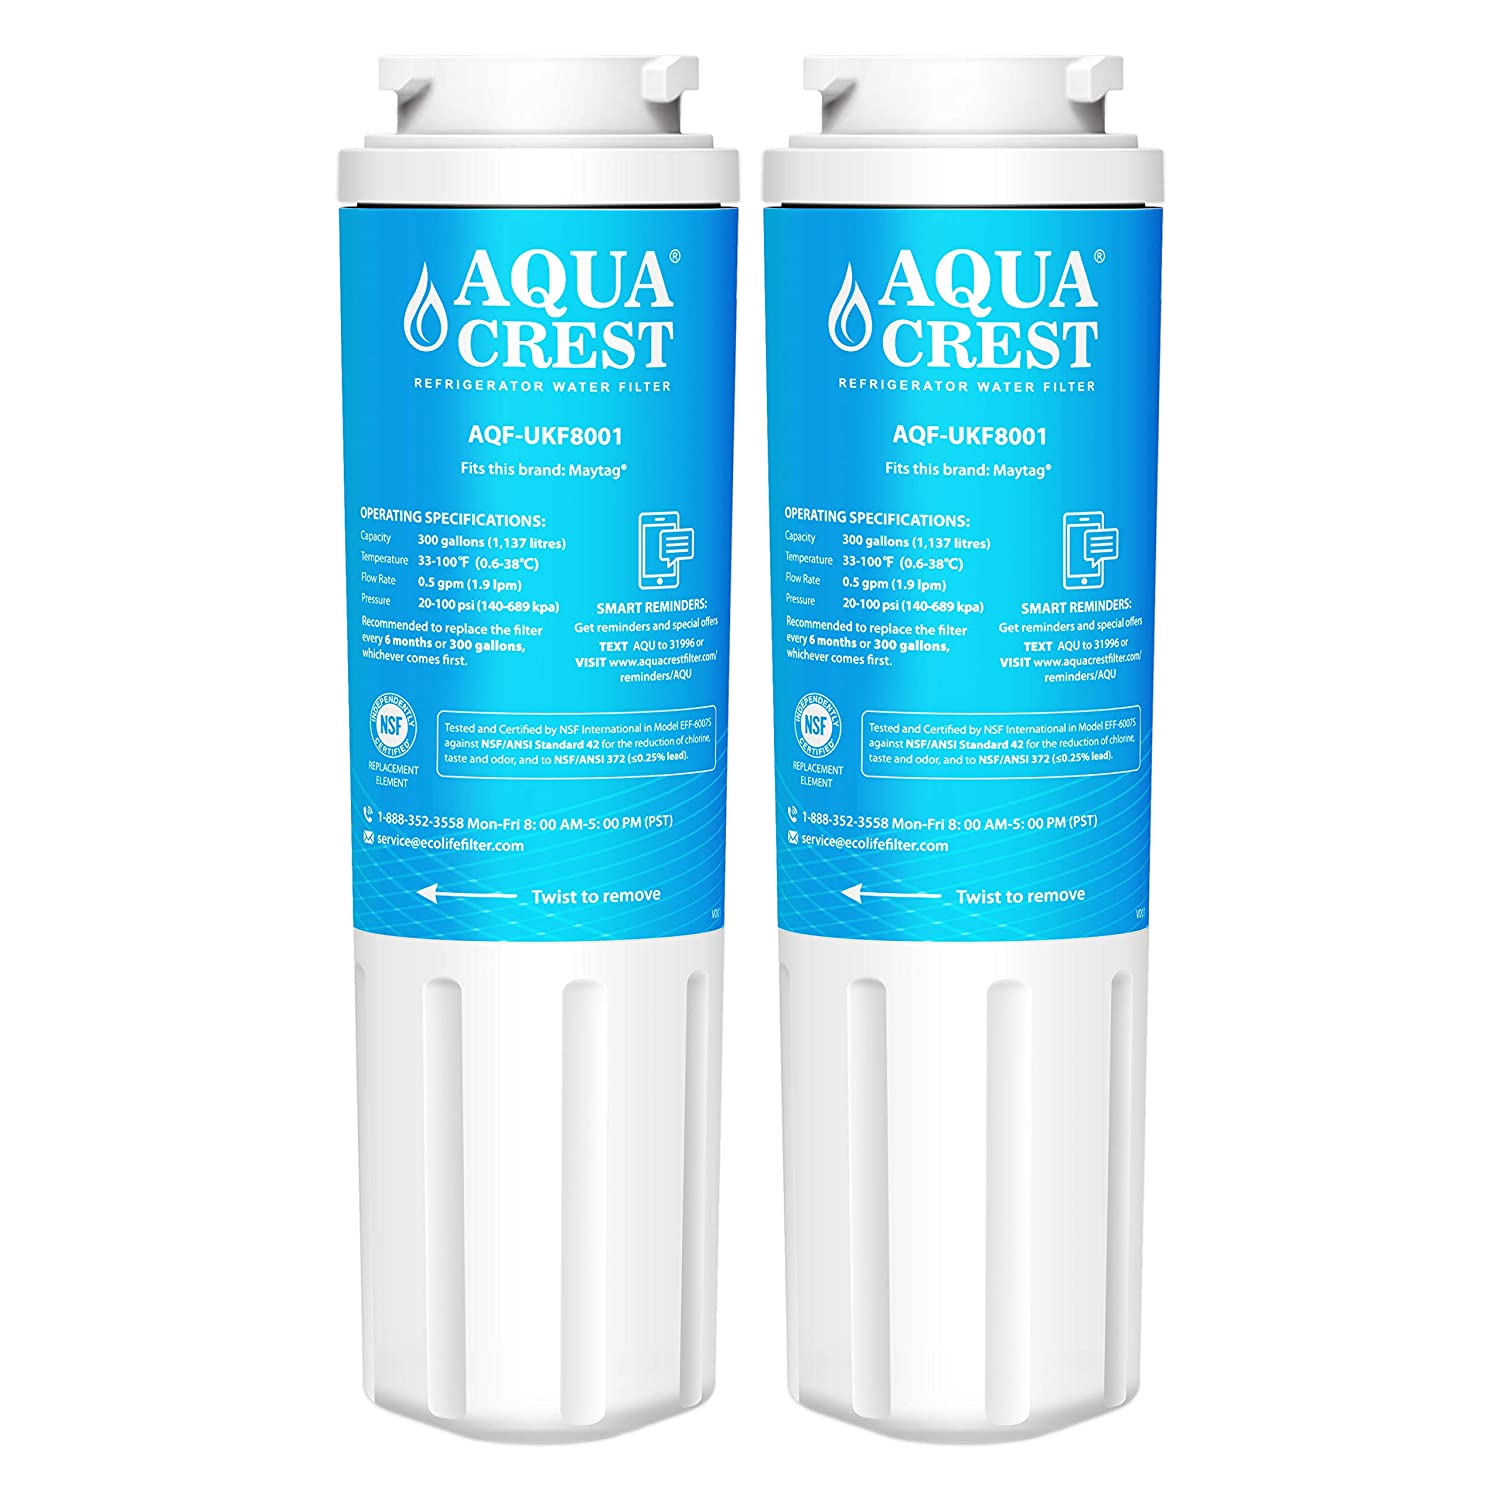 1dcdfbb8115 Amazon.com  AQUACREST Replacement UKF8001 Refrigerator Water Filter ...